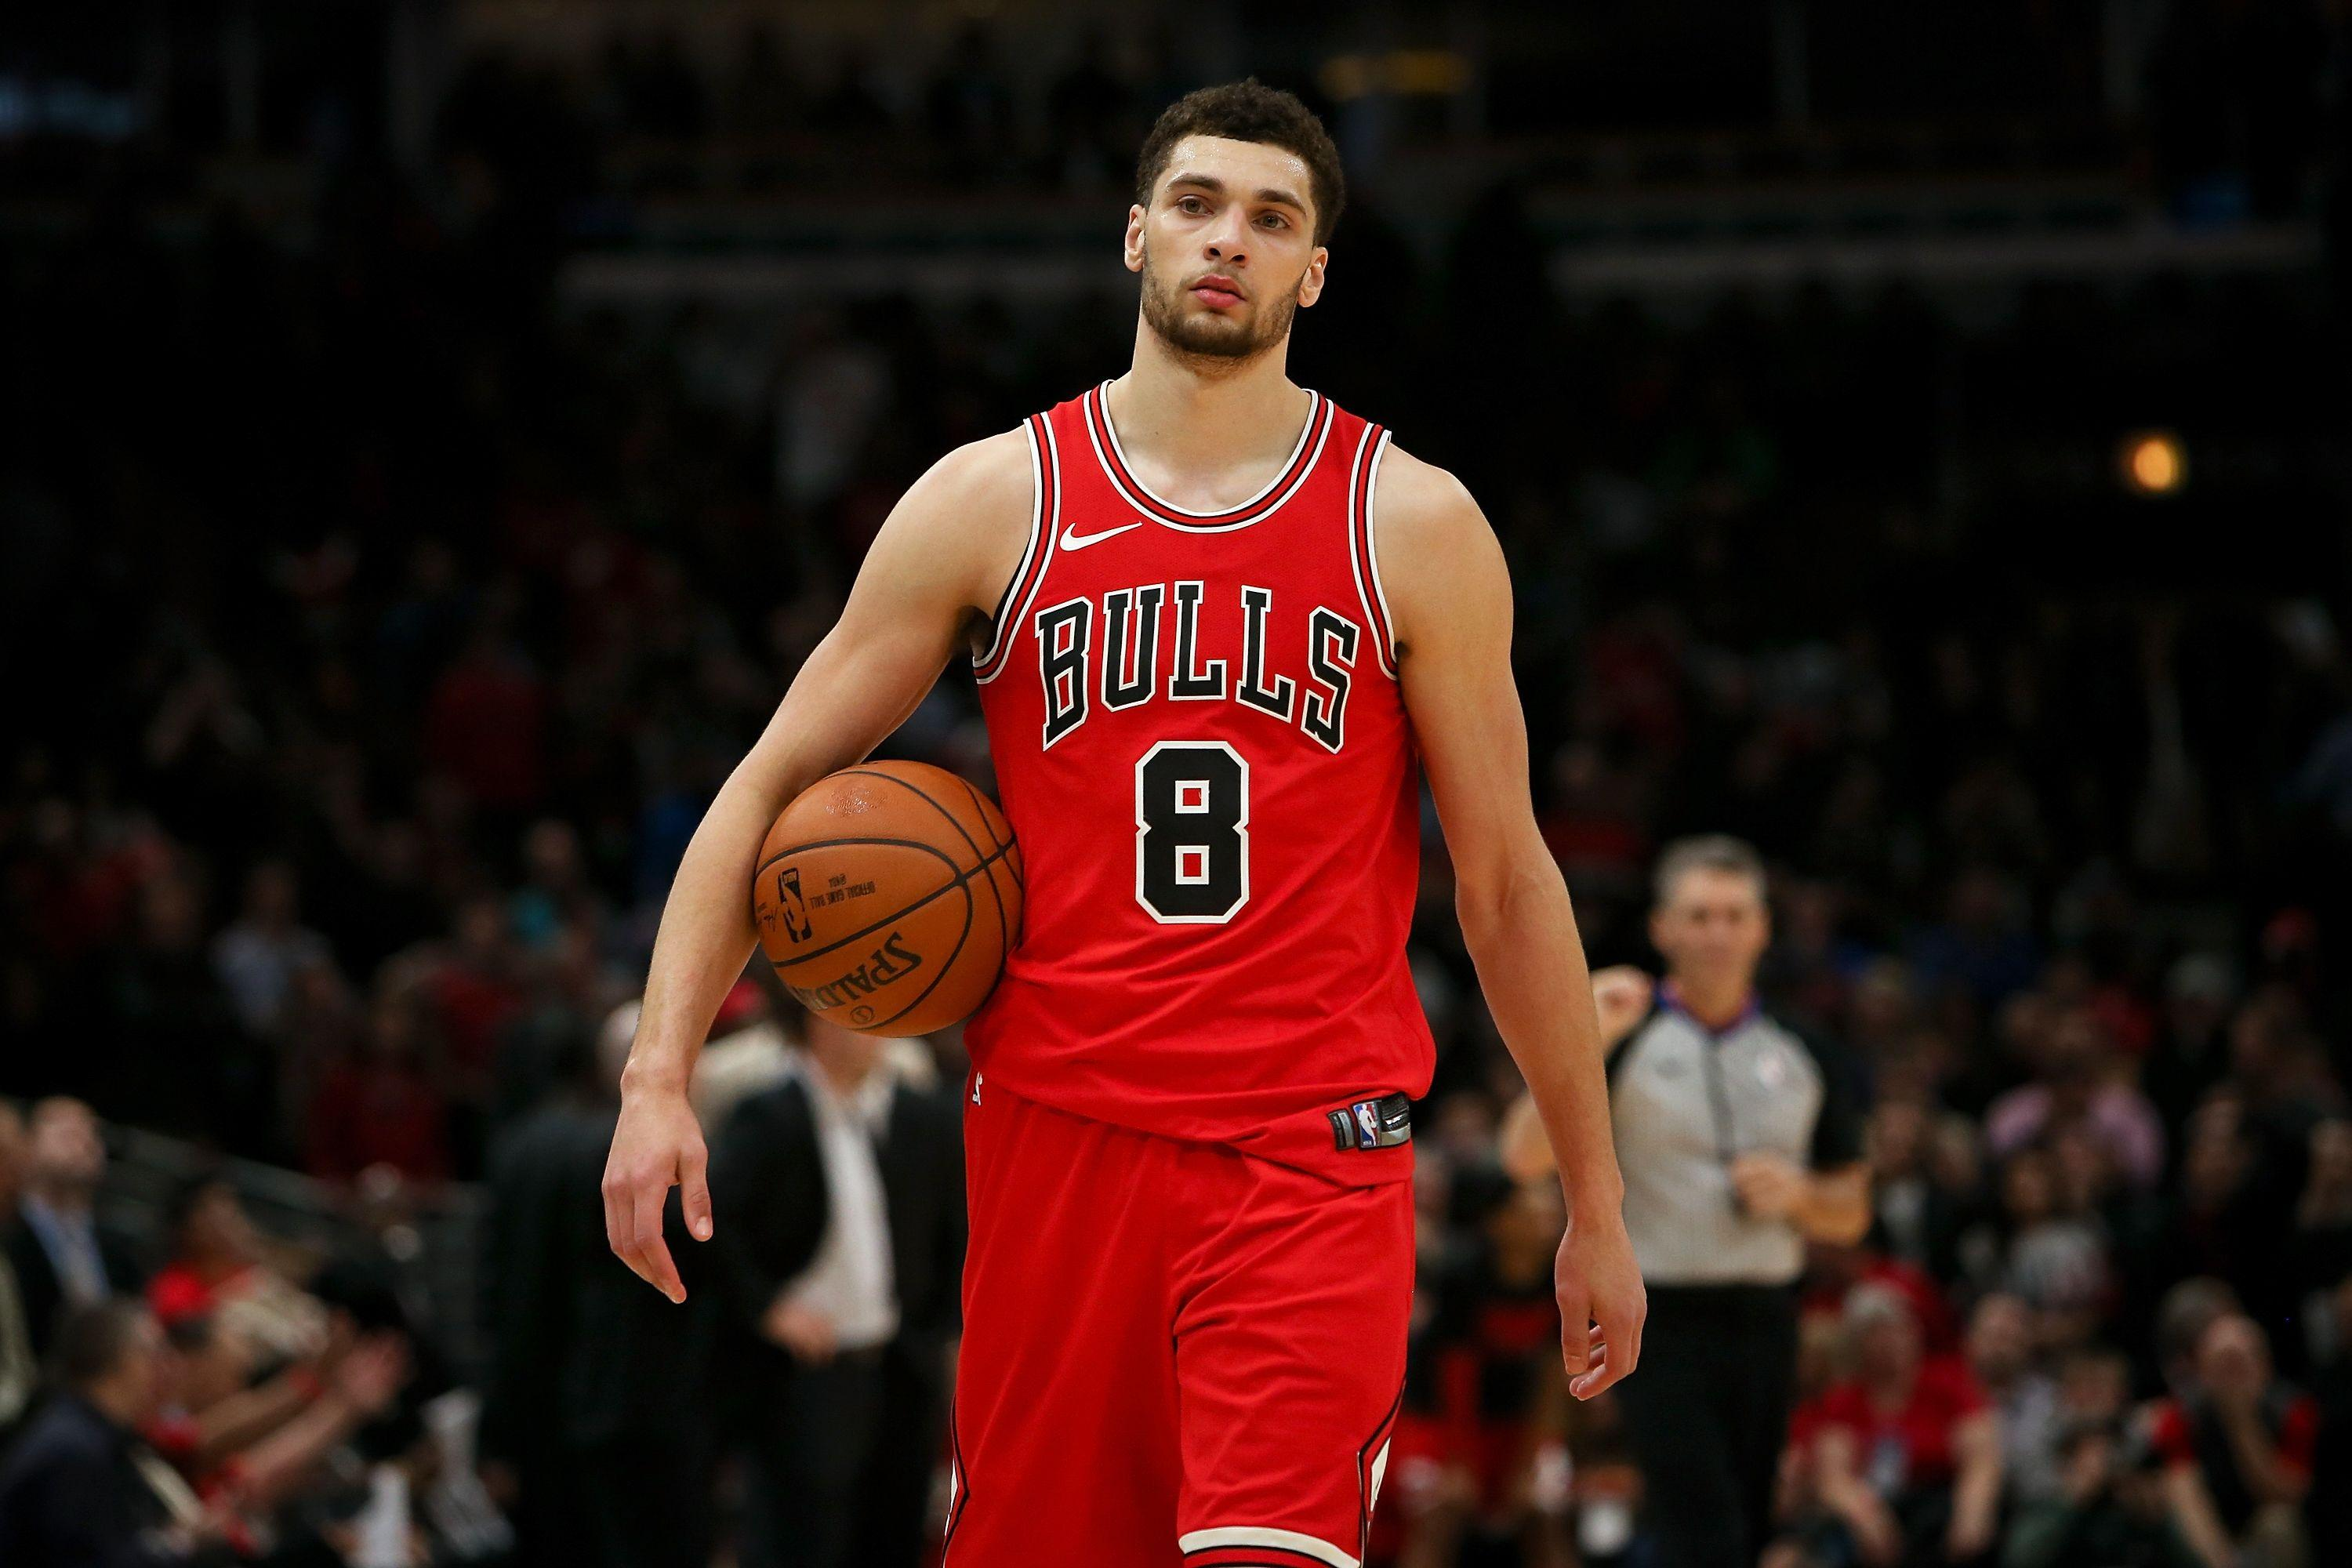 Zach LaVine's struggles has left the Chicago Bulls with more